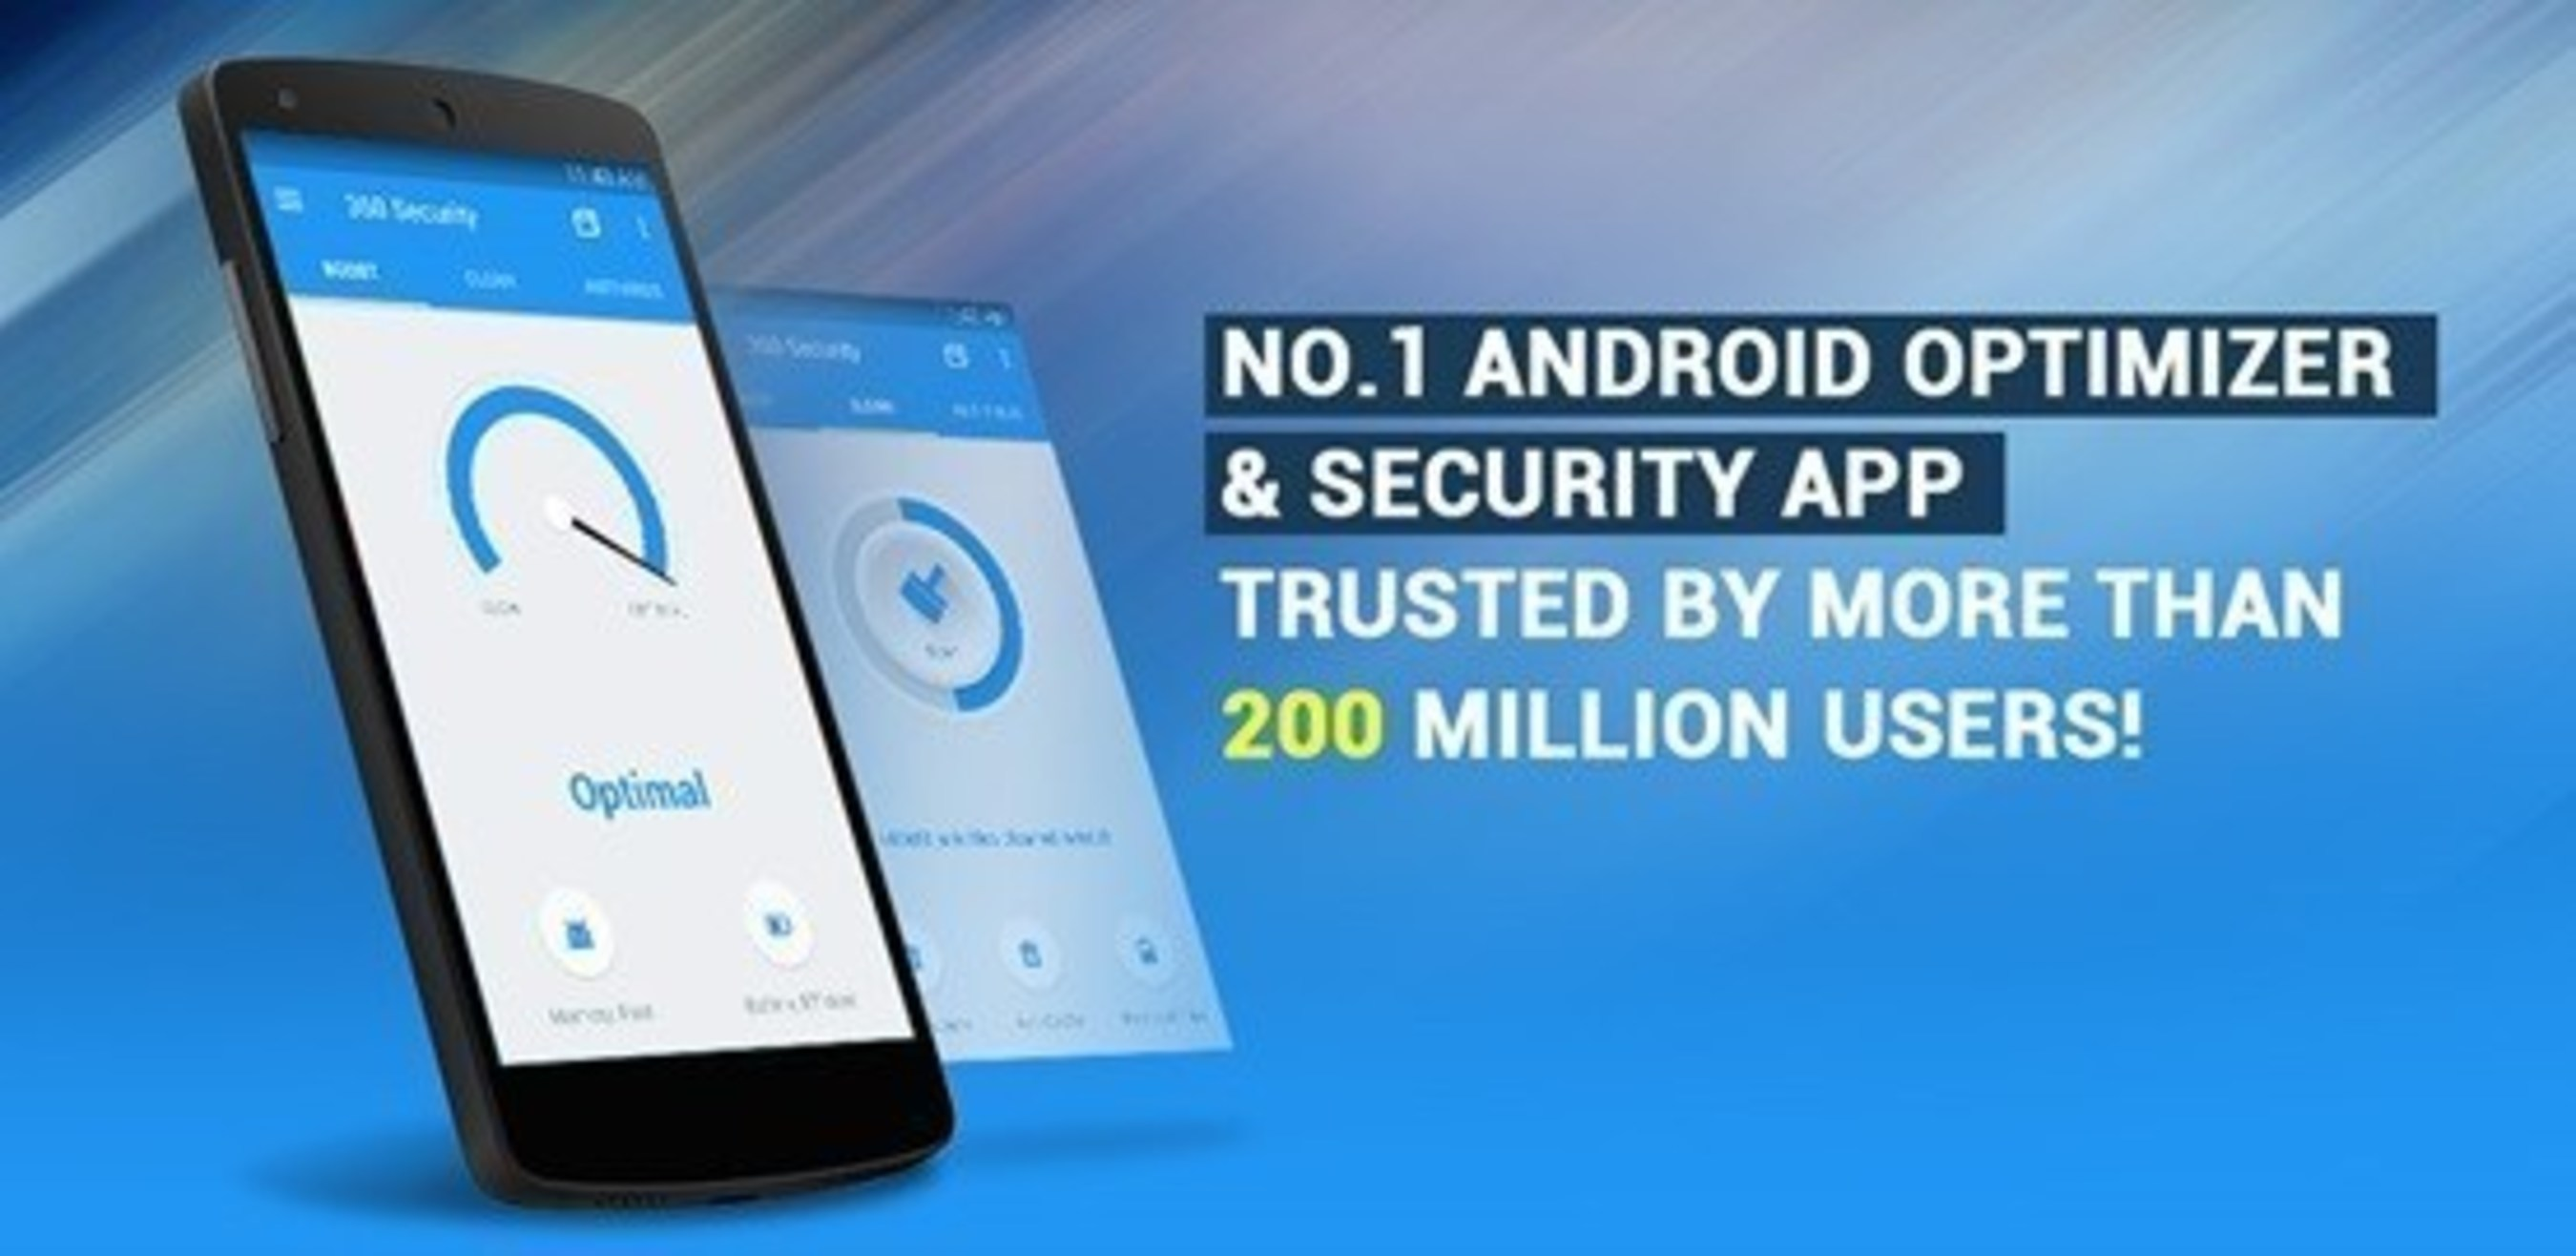 The 360 Security App